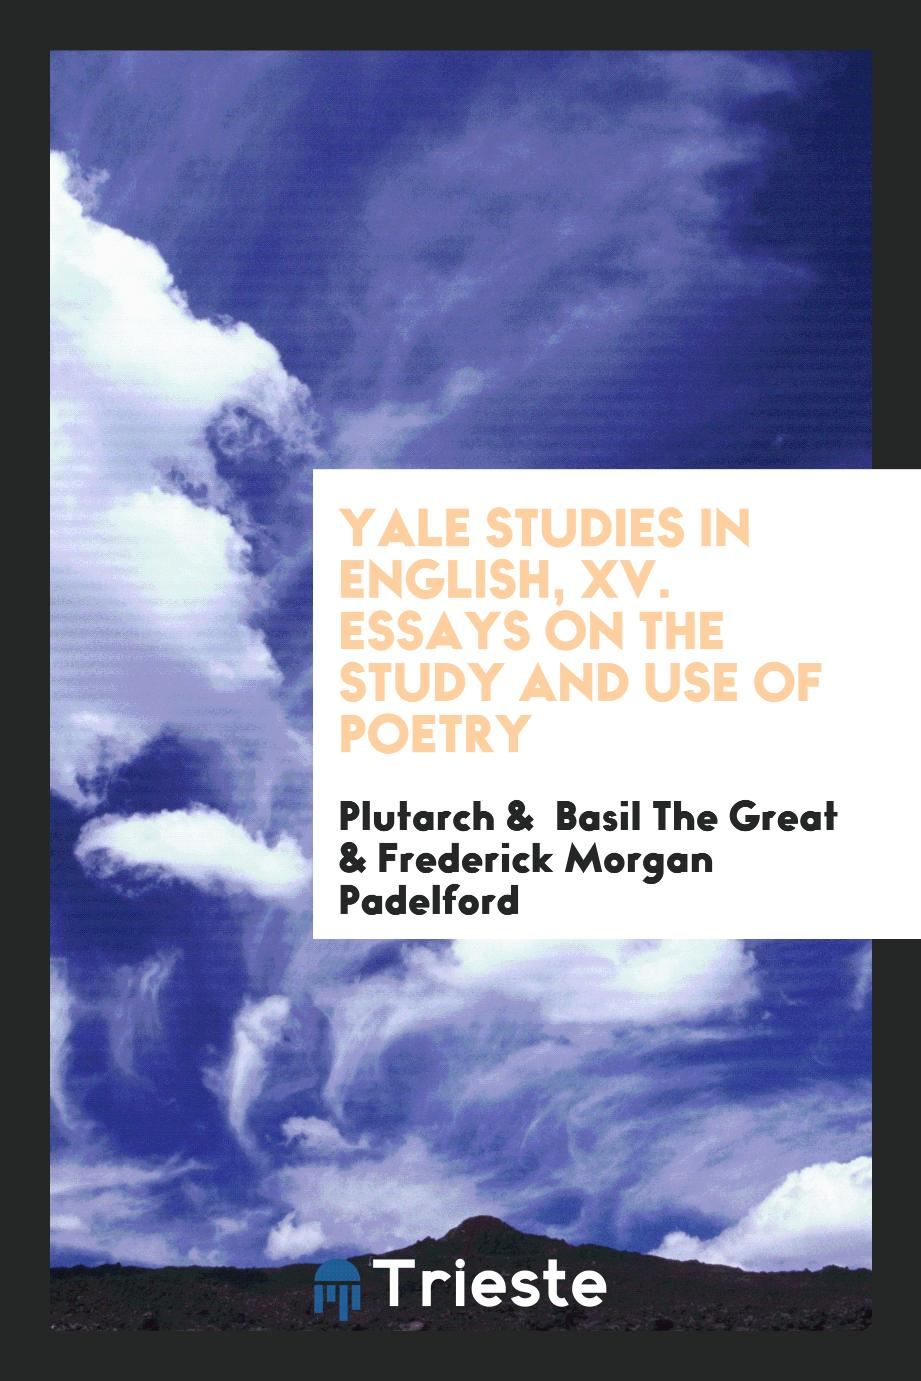 Yale Studies in English, XV. Essays on the Study and Use of Poetry